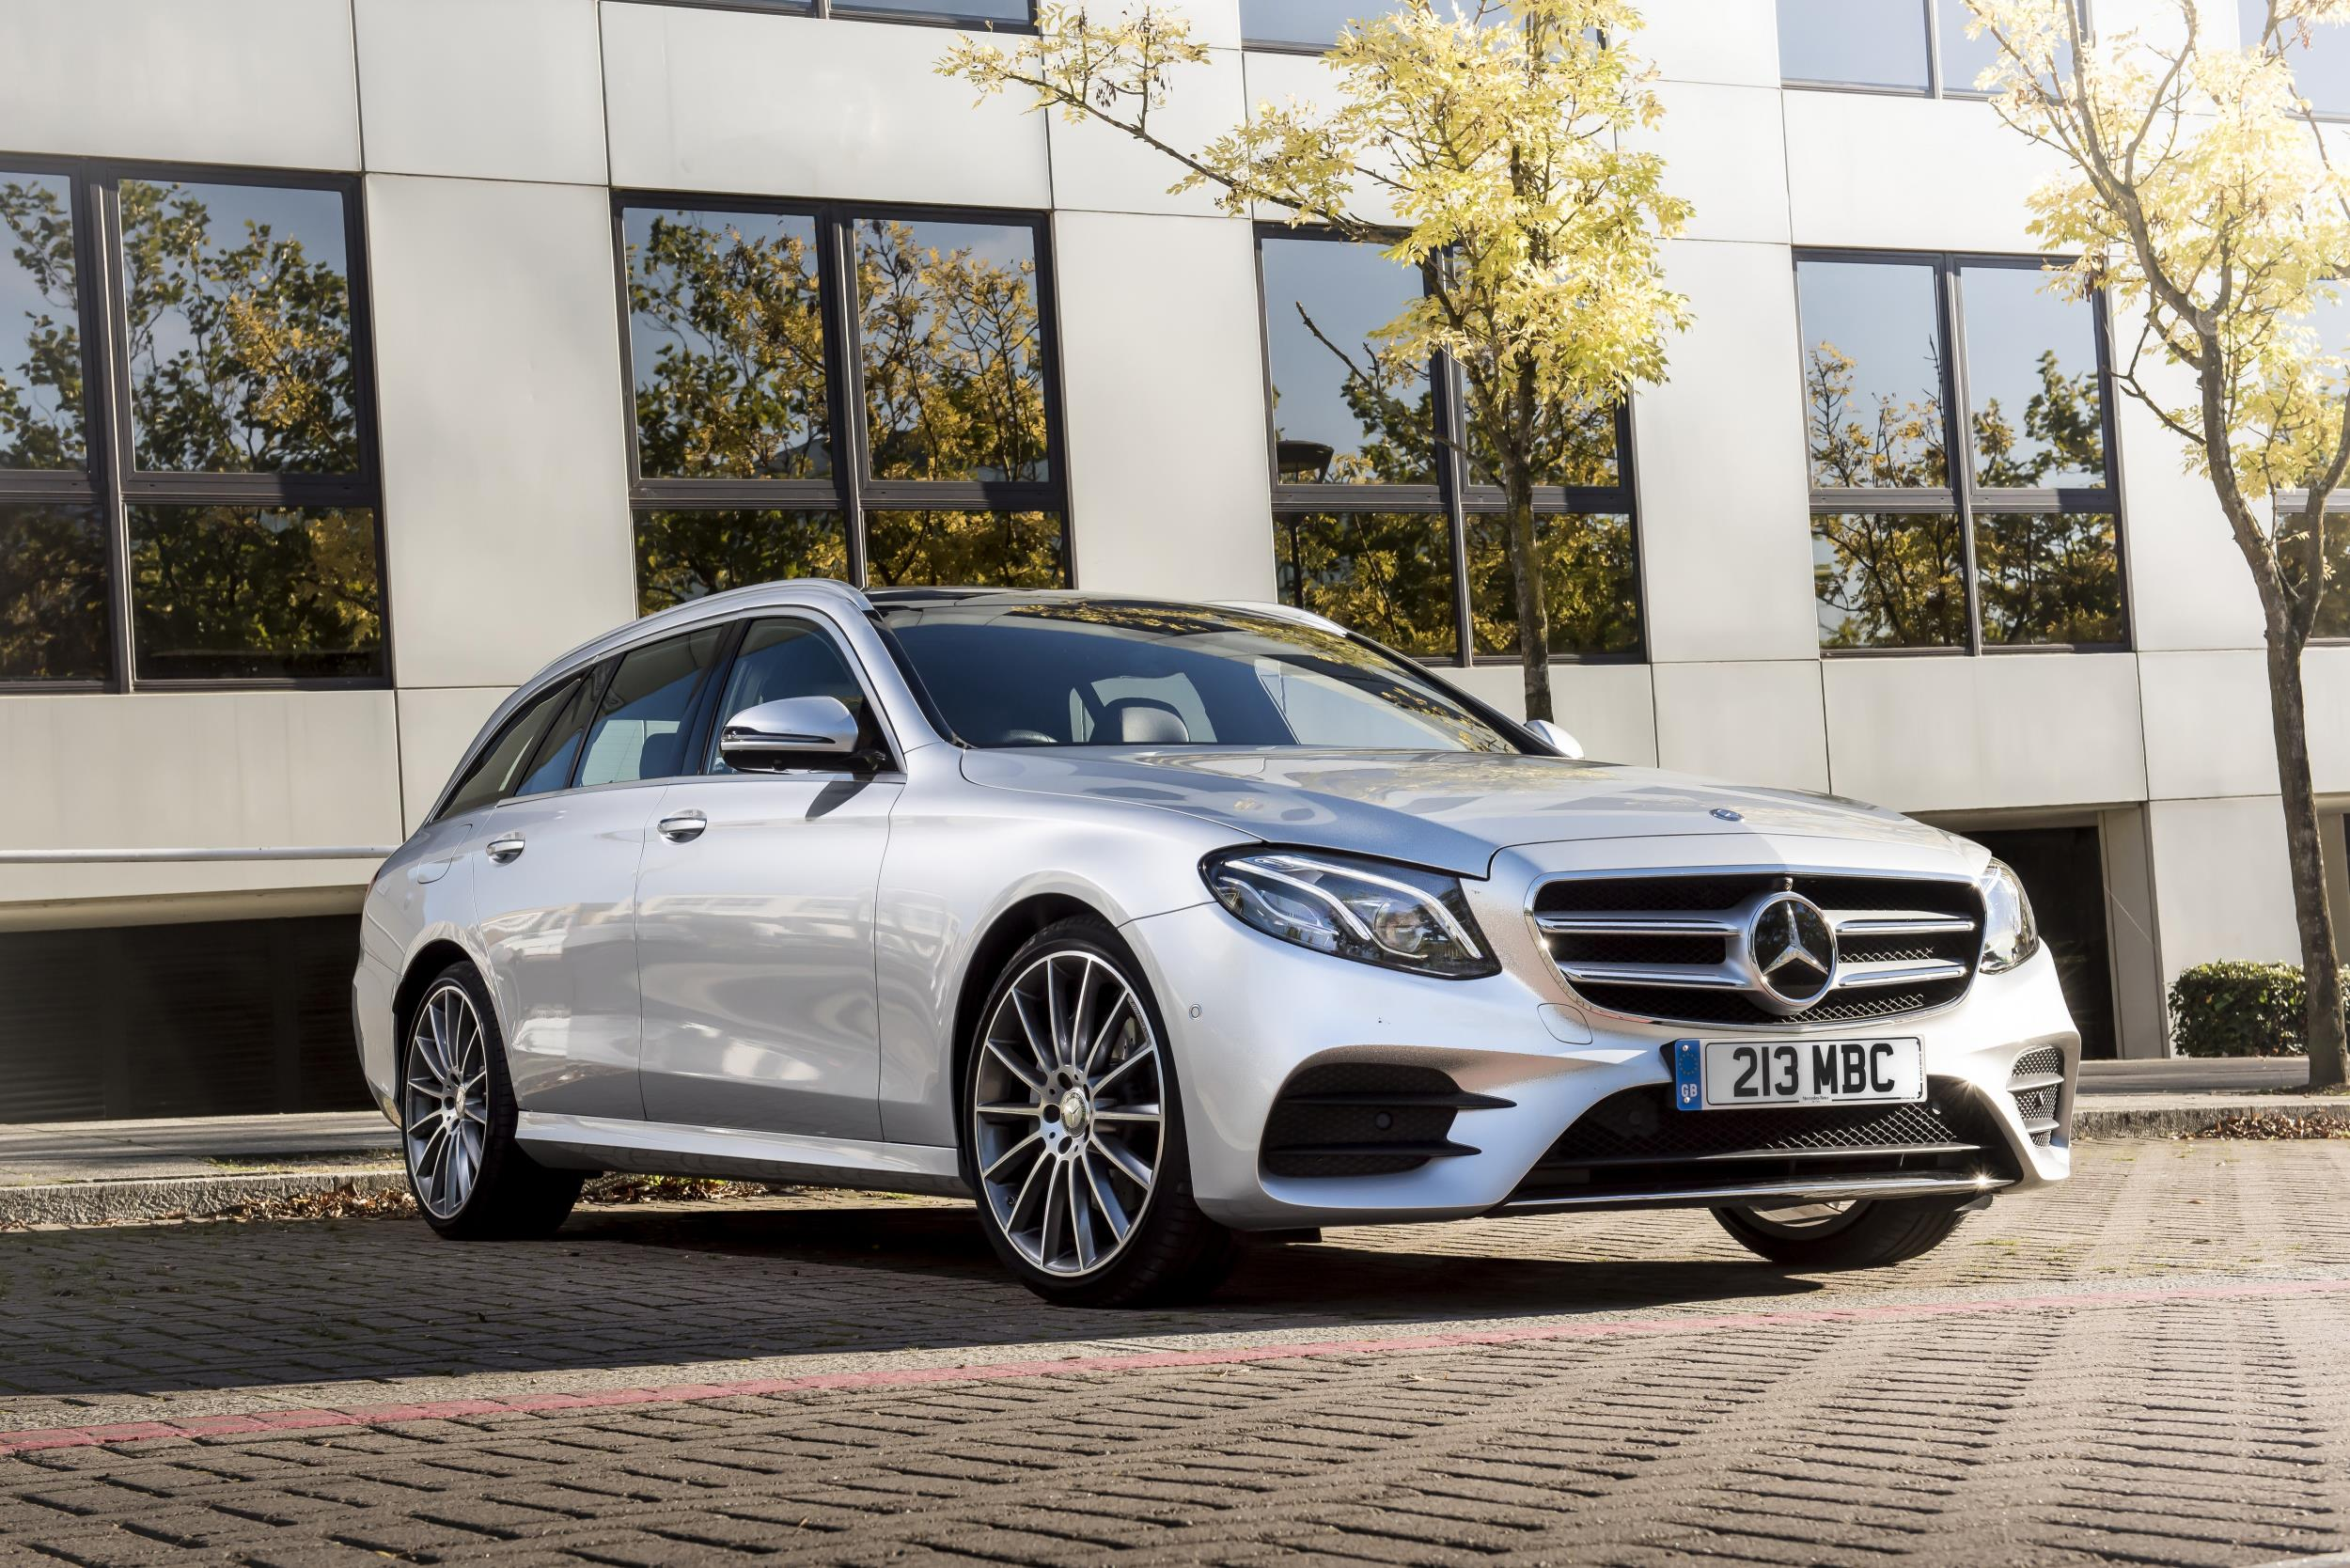 Mercedes E Class parked front view